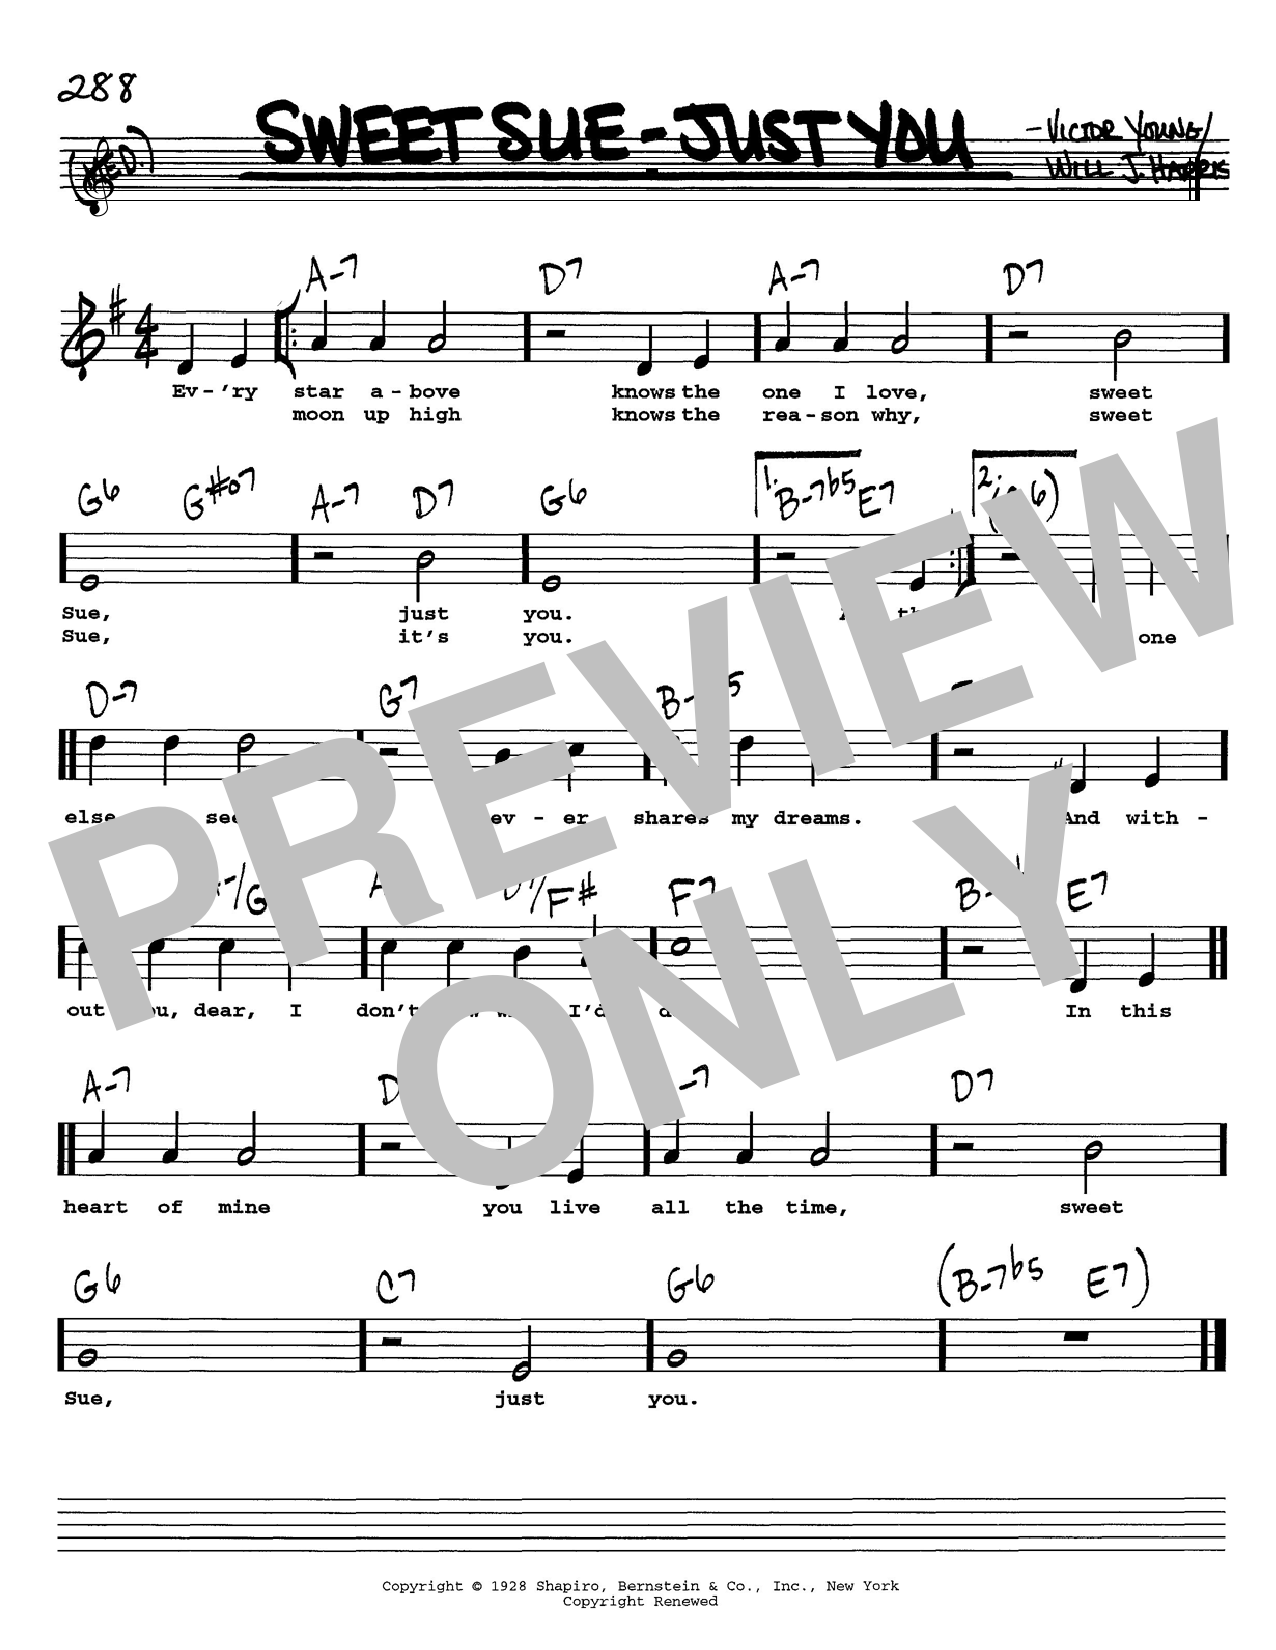 Jazz real pdf just book